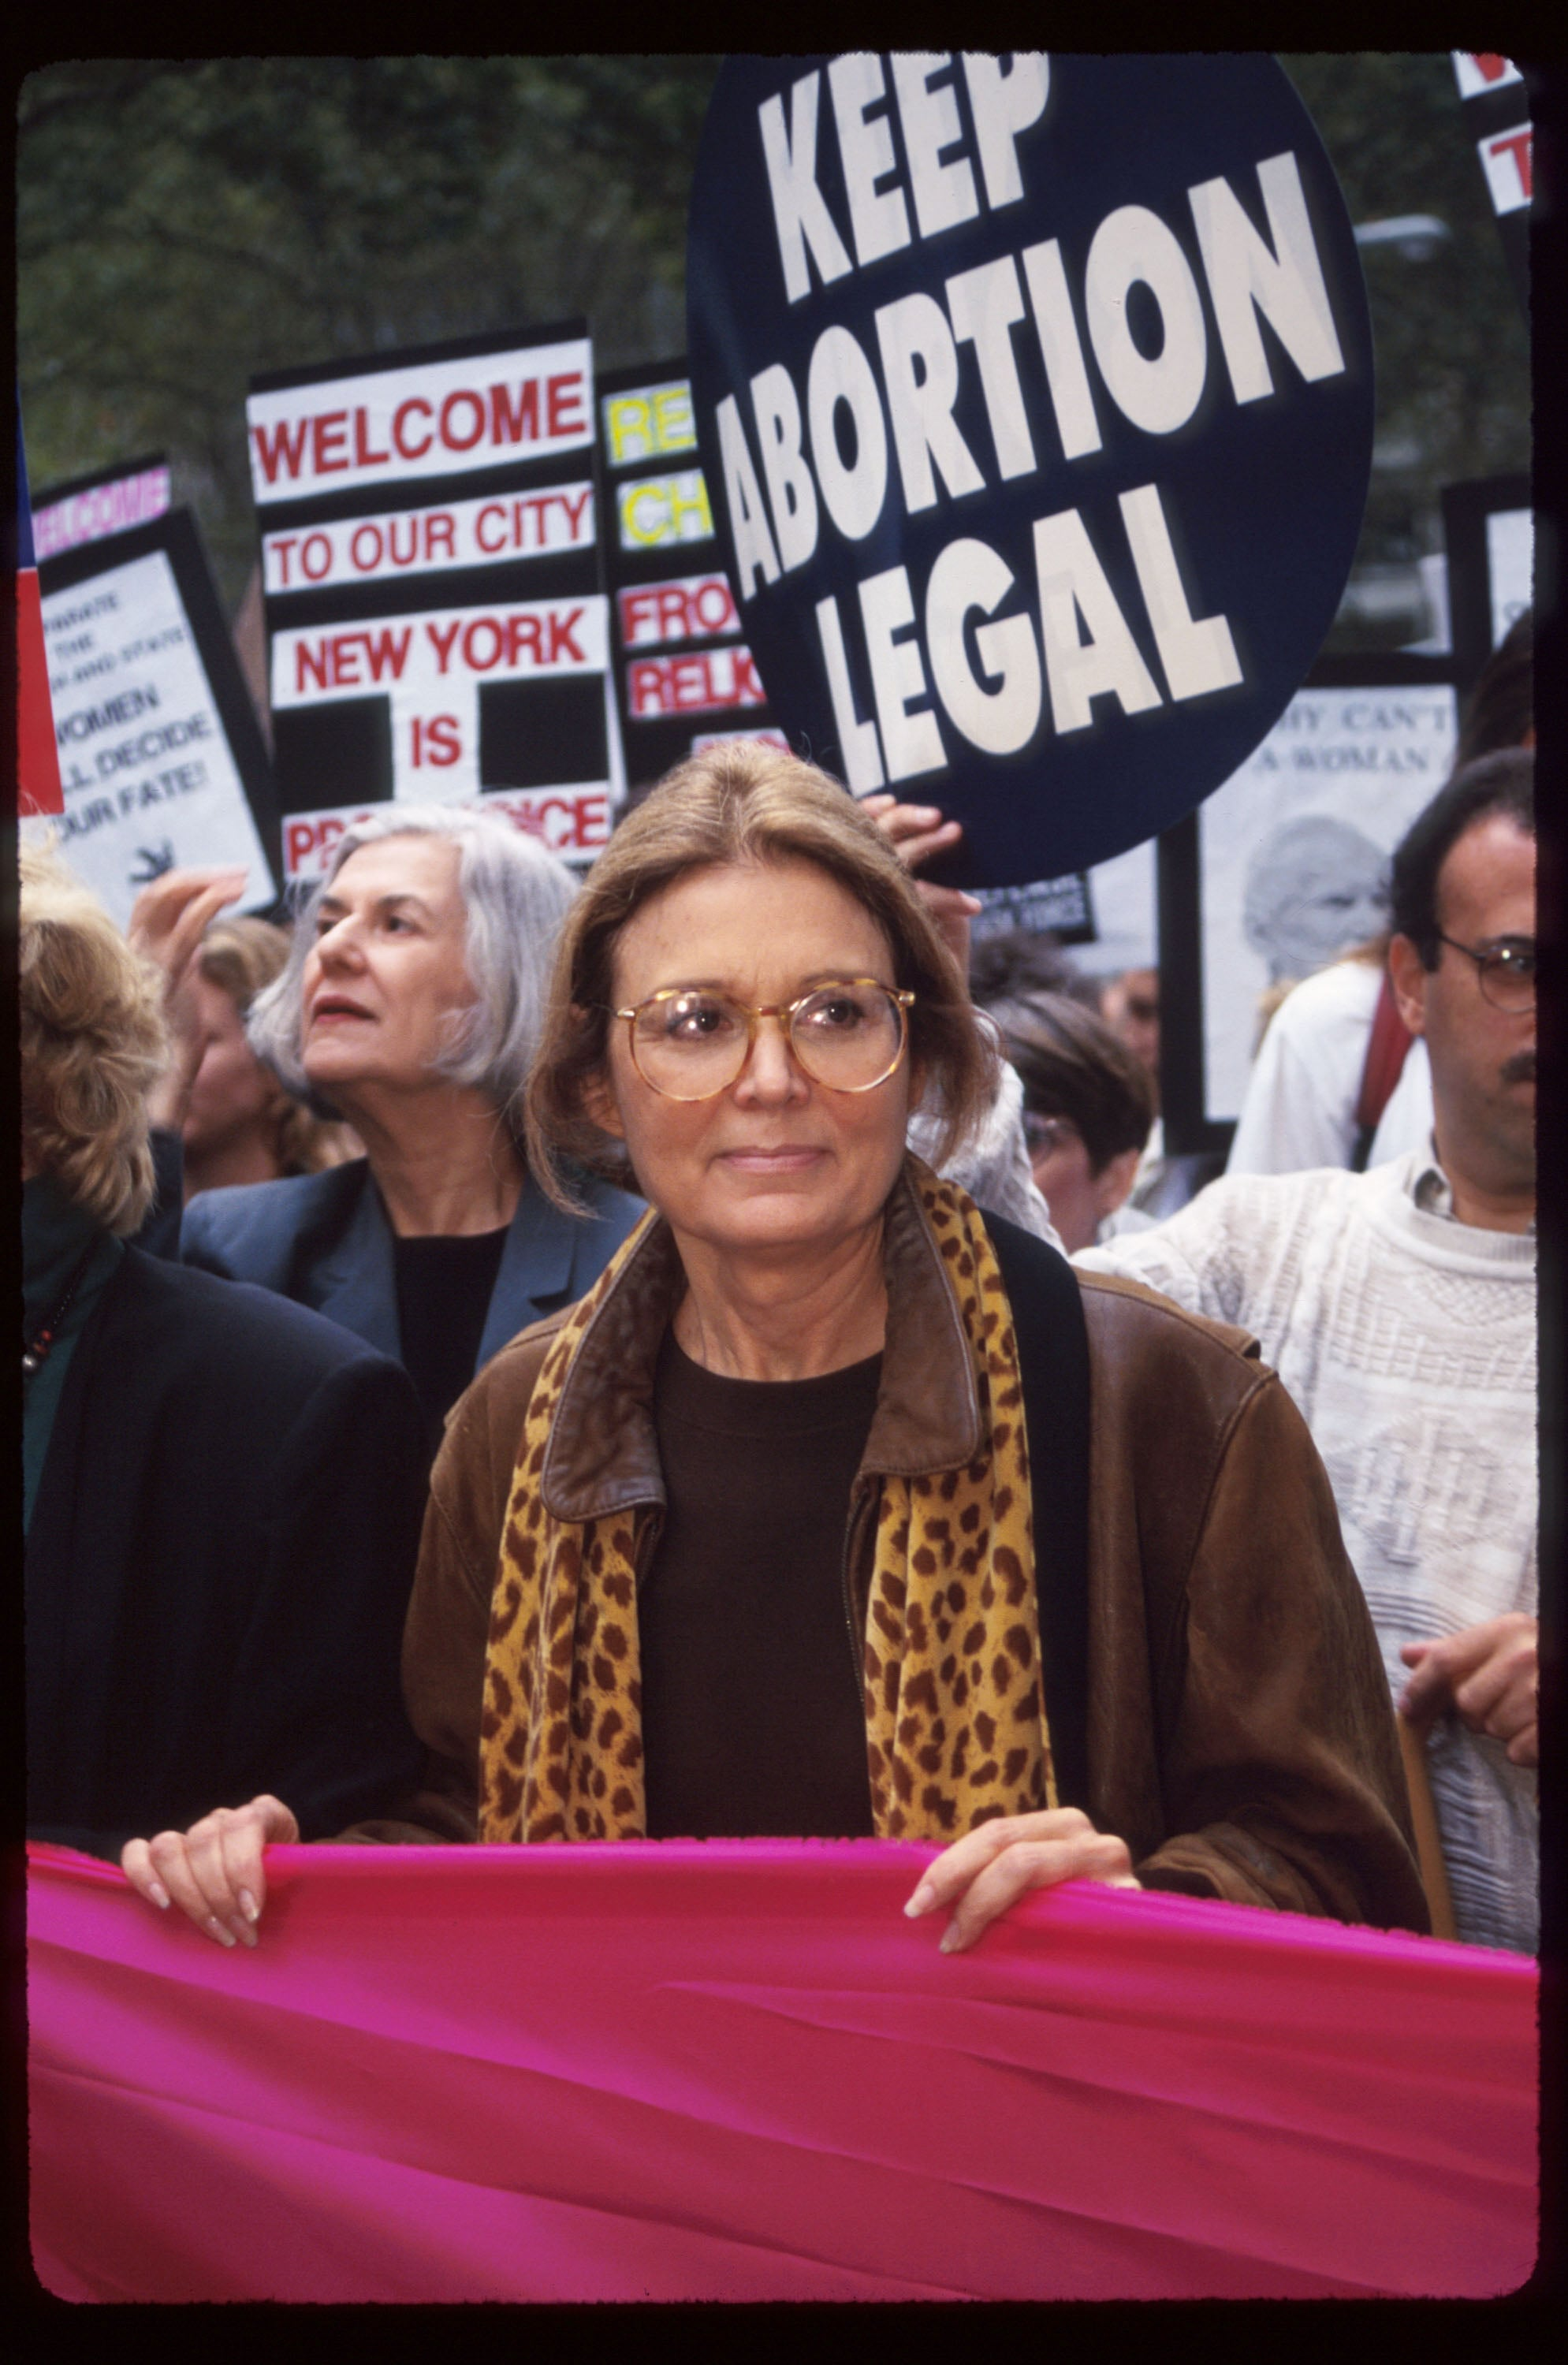 Women's Rights in US, 1995